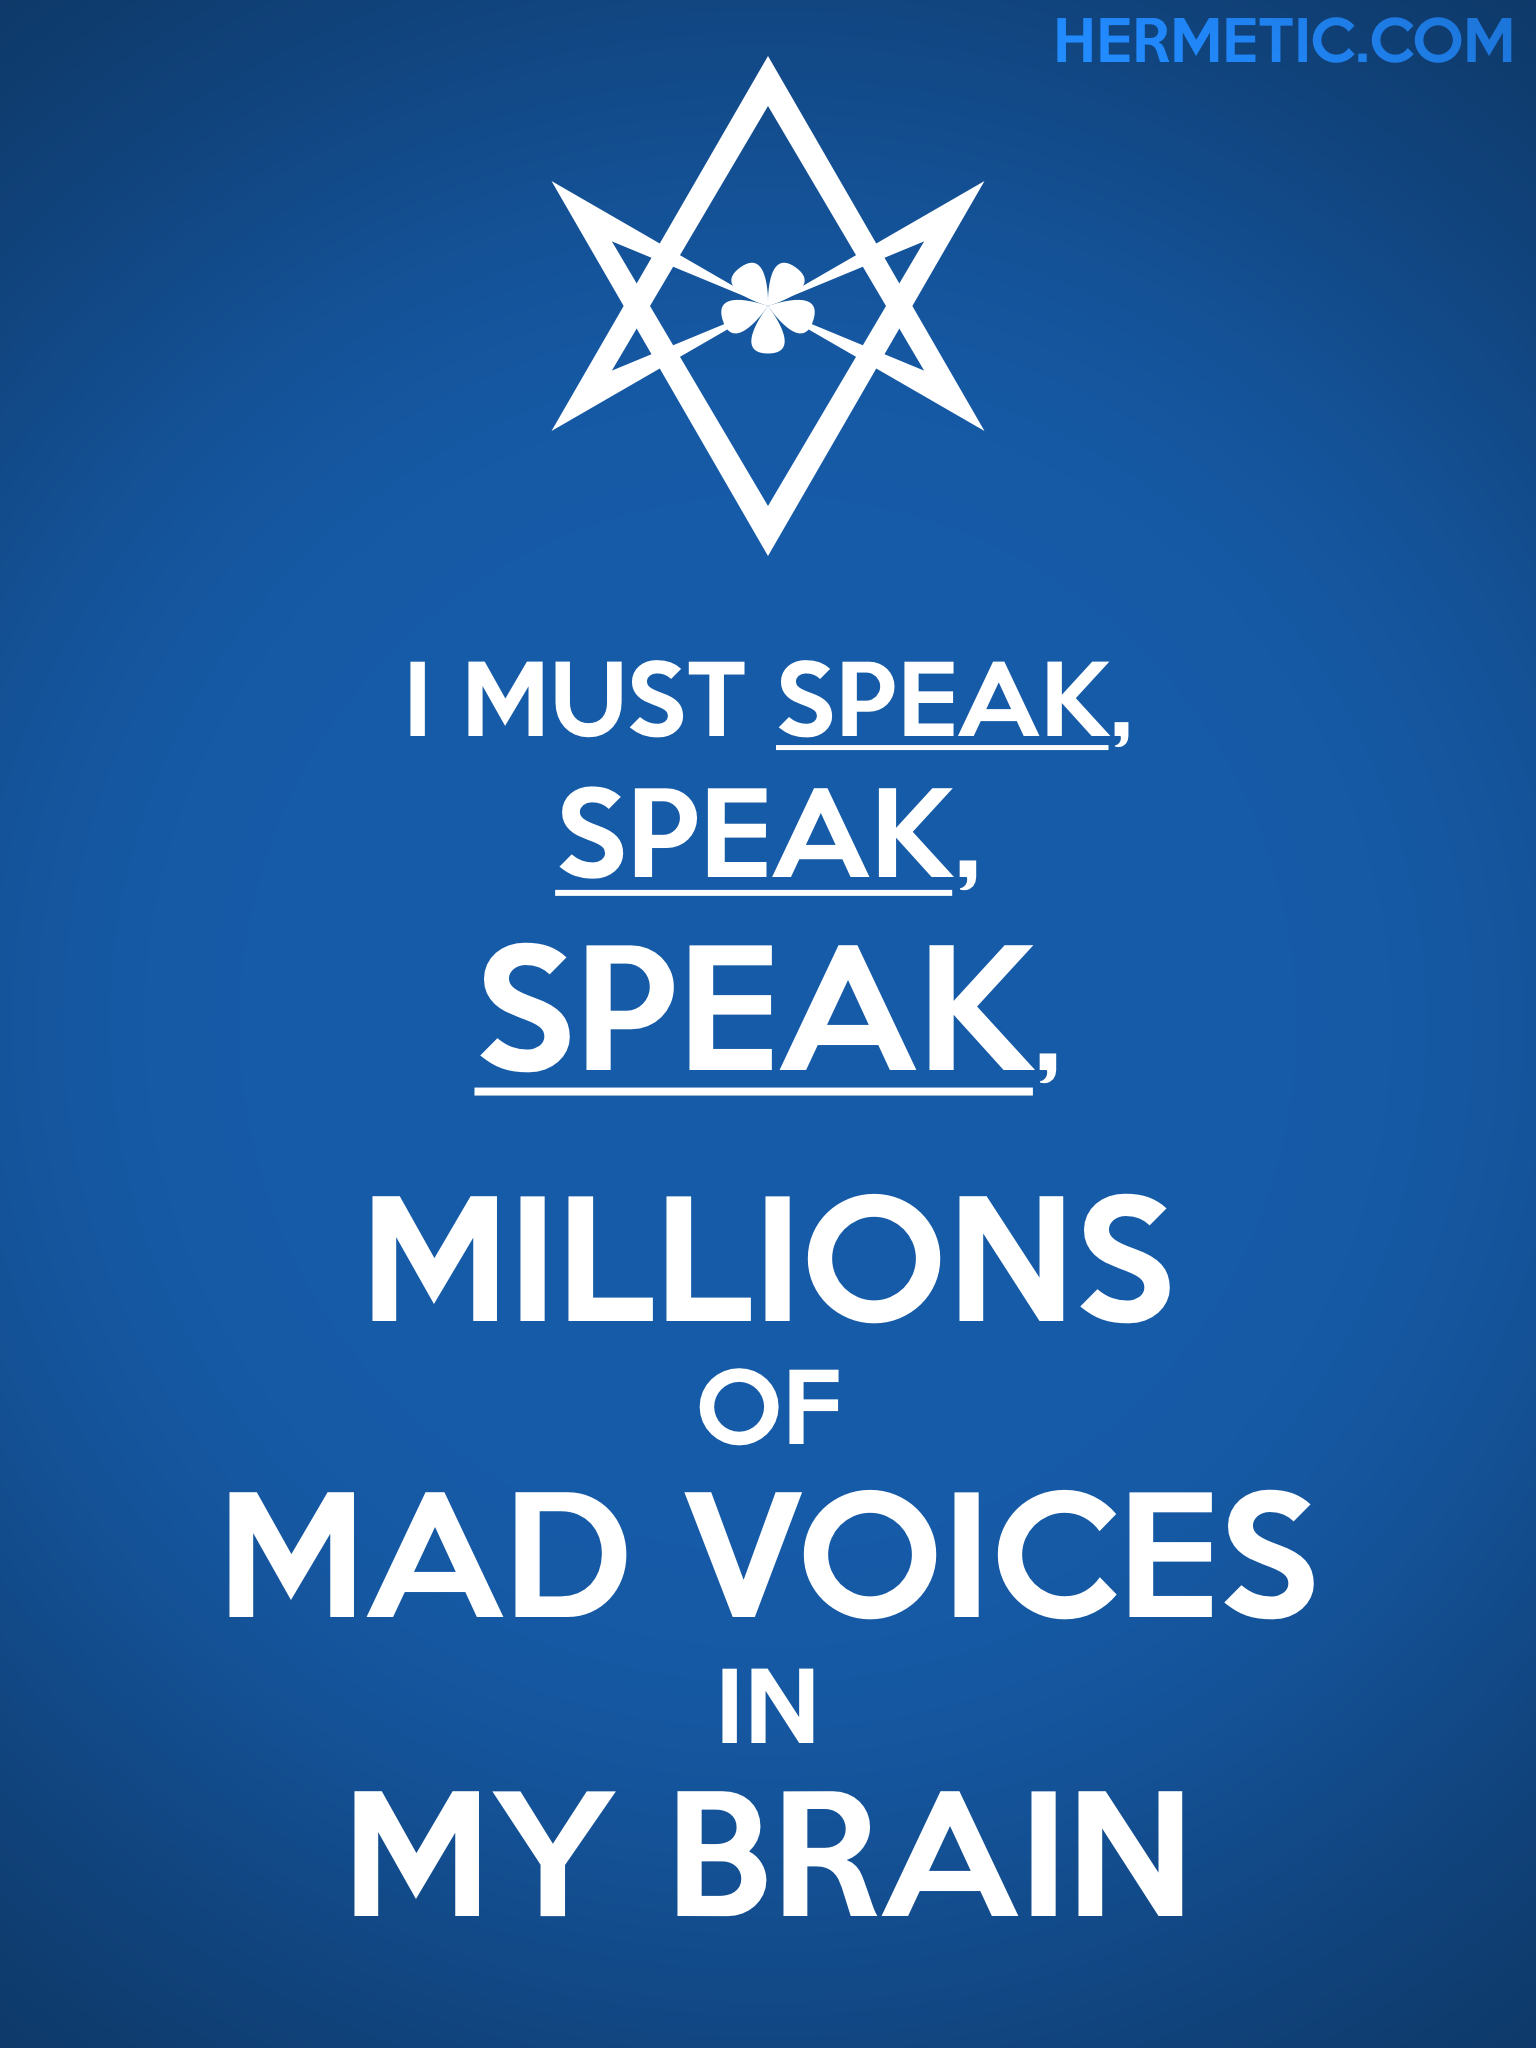 Unicursal MILLIONS OF MAD VOICES Propaganda Poster from Hermetic Library Office of the Ministry of Information